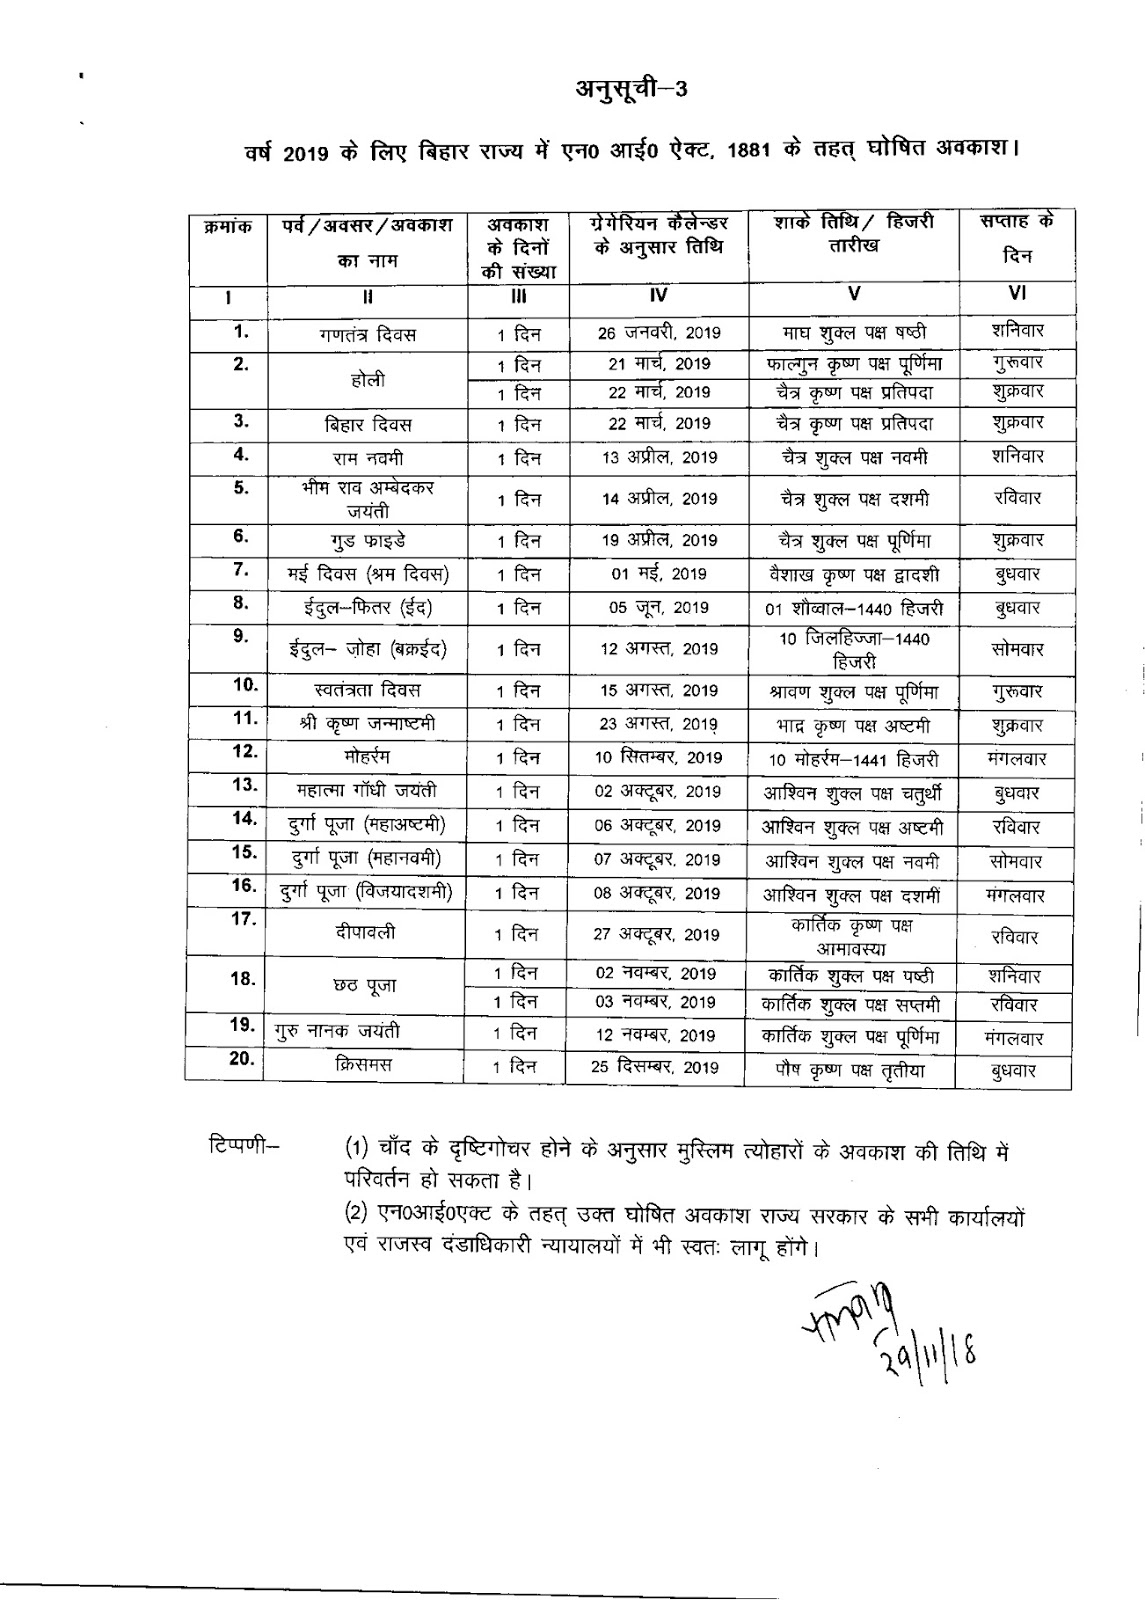 Bihar Government Calendar 2019 #educratsweb with regard to 2020 Bihar Government Calendar